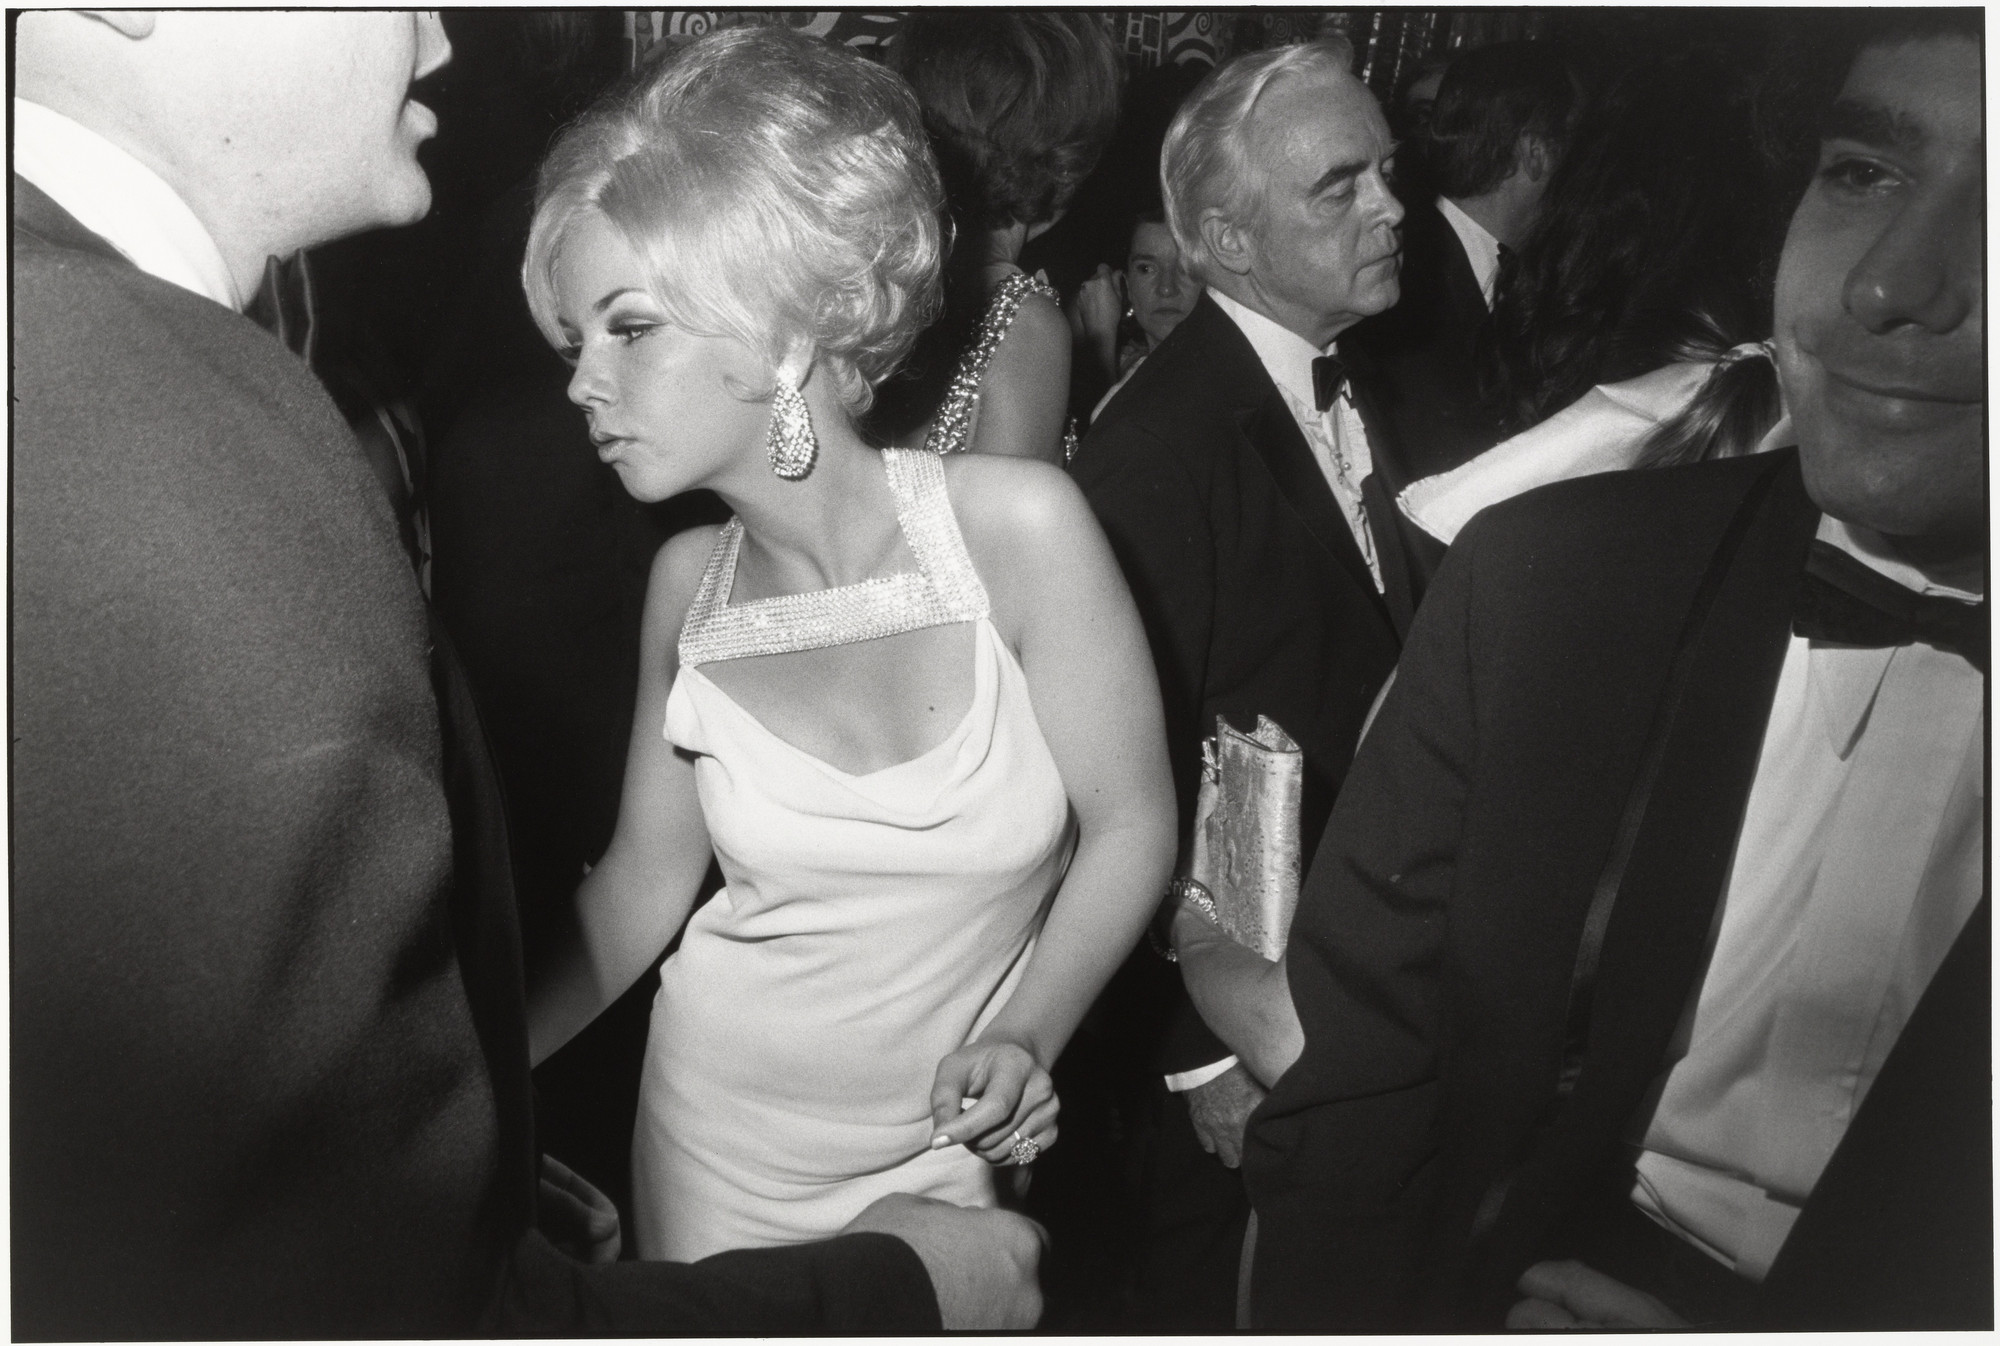 Garry Winogrand. Centennial Ball, Metropolitan Museum, New York from Women are Beautiful. 1969